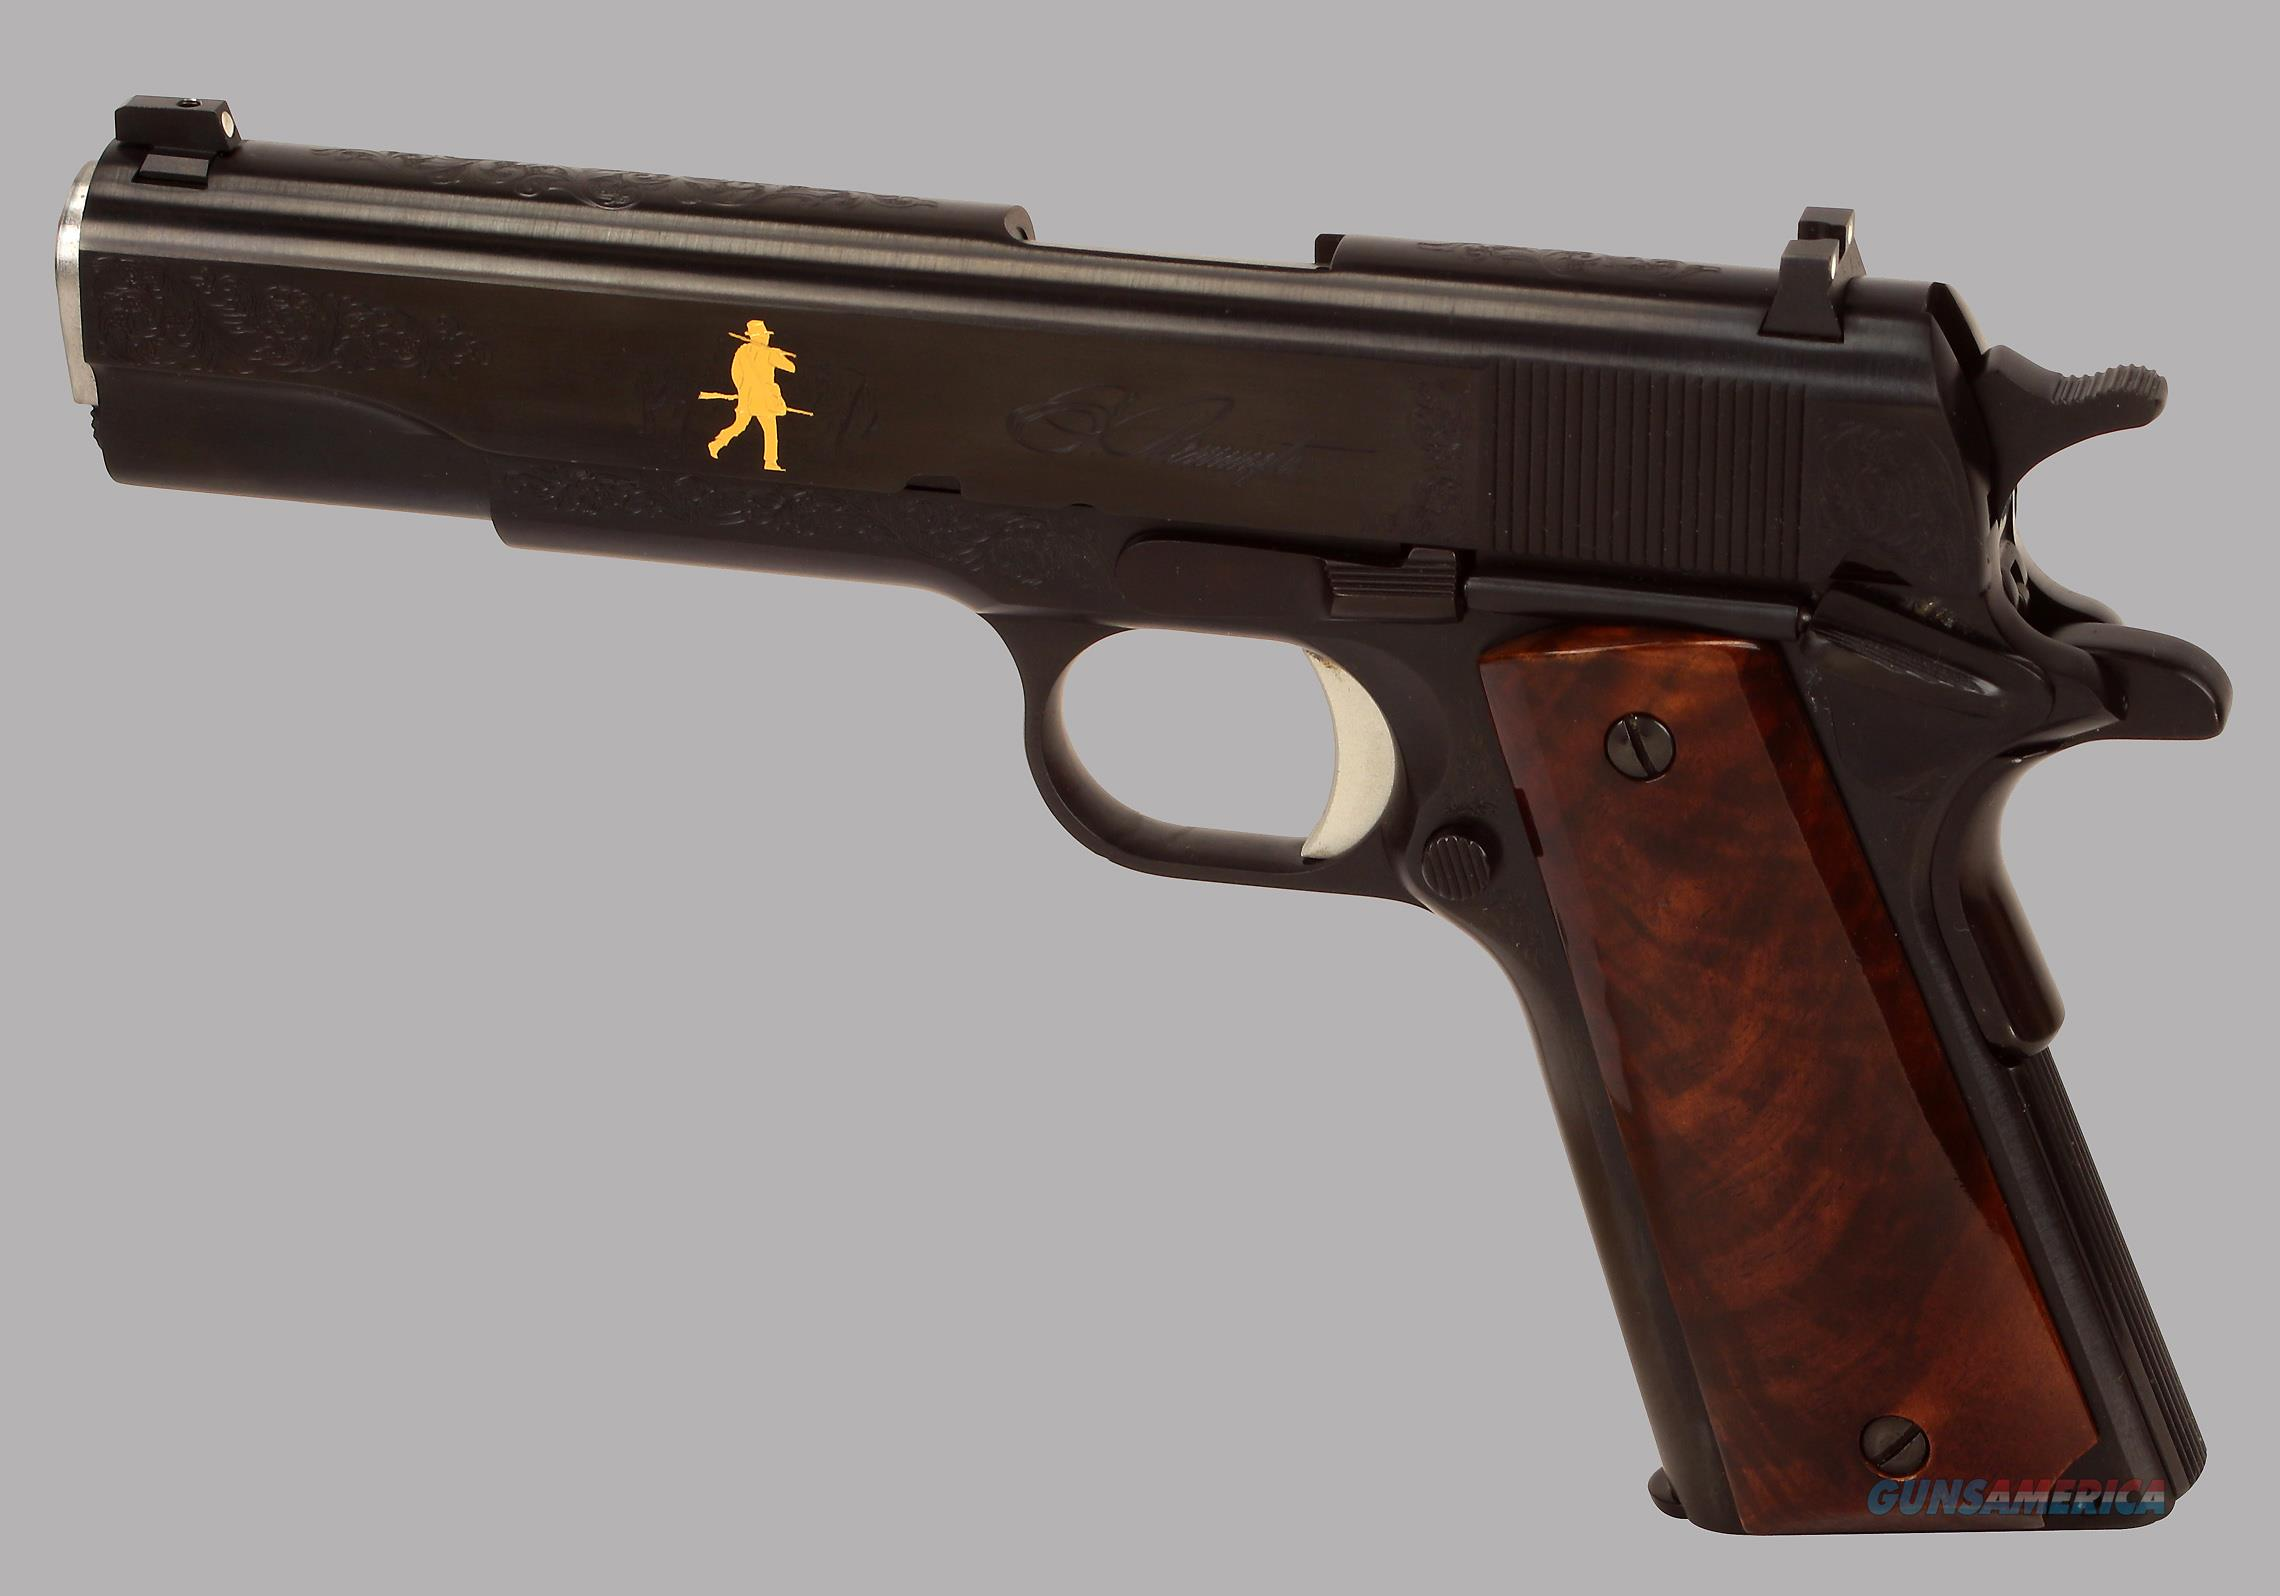 Remington R1 1911 200th Anniversary 45acp Pistol  Guns > Pistols > Remington Pistols - Modern > 1911